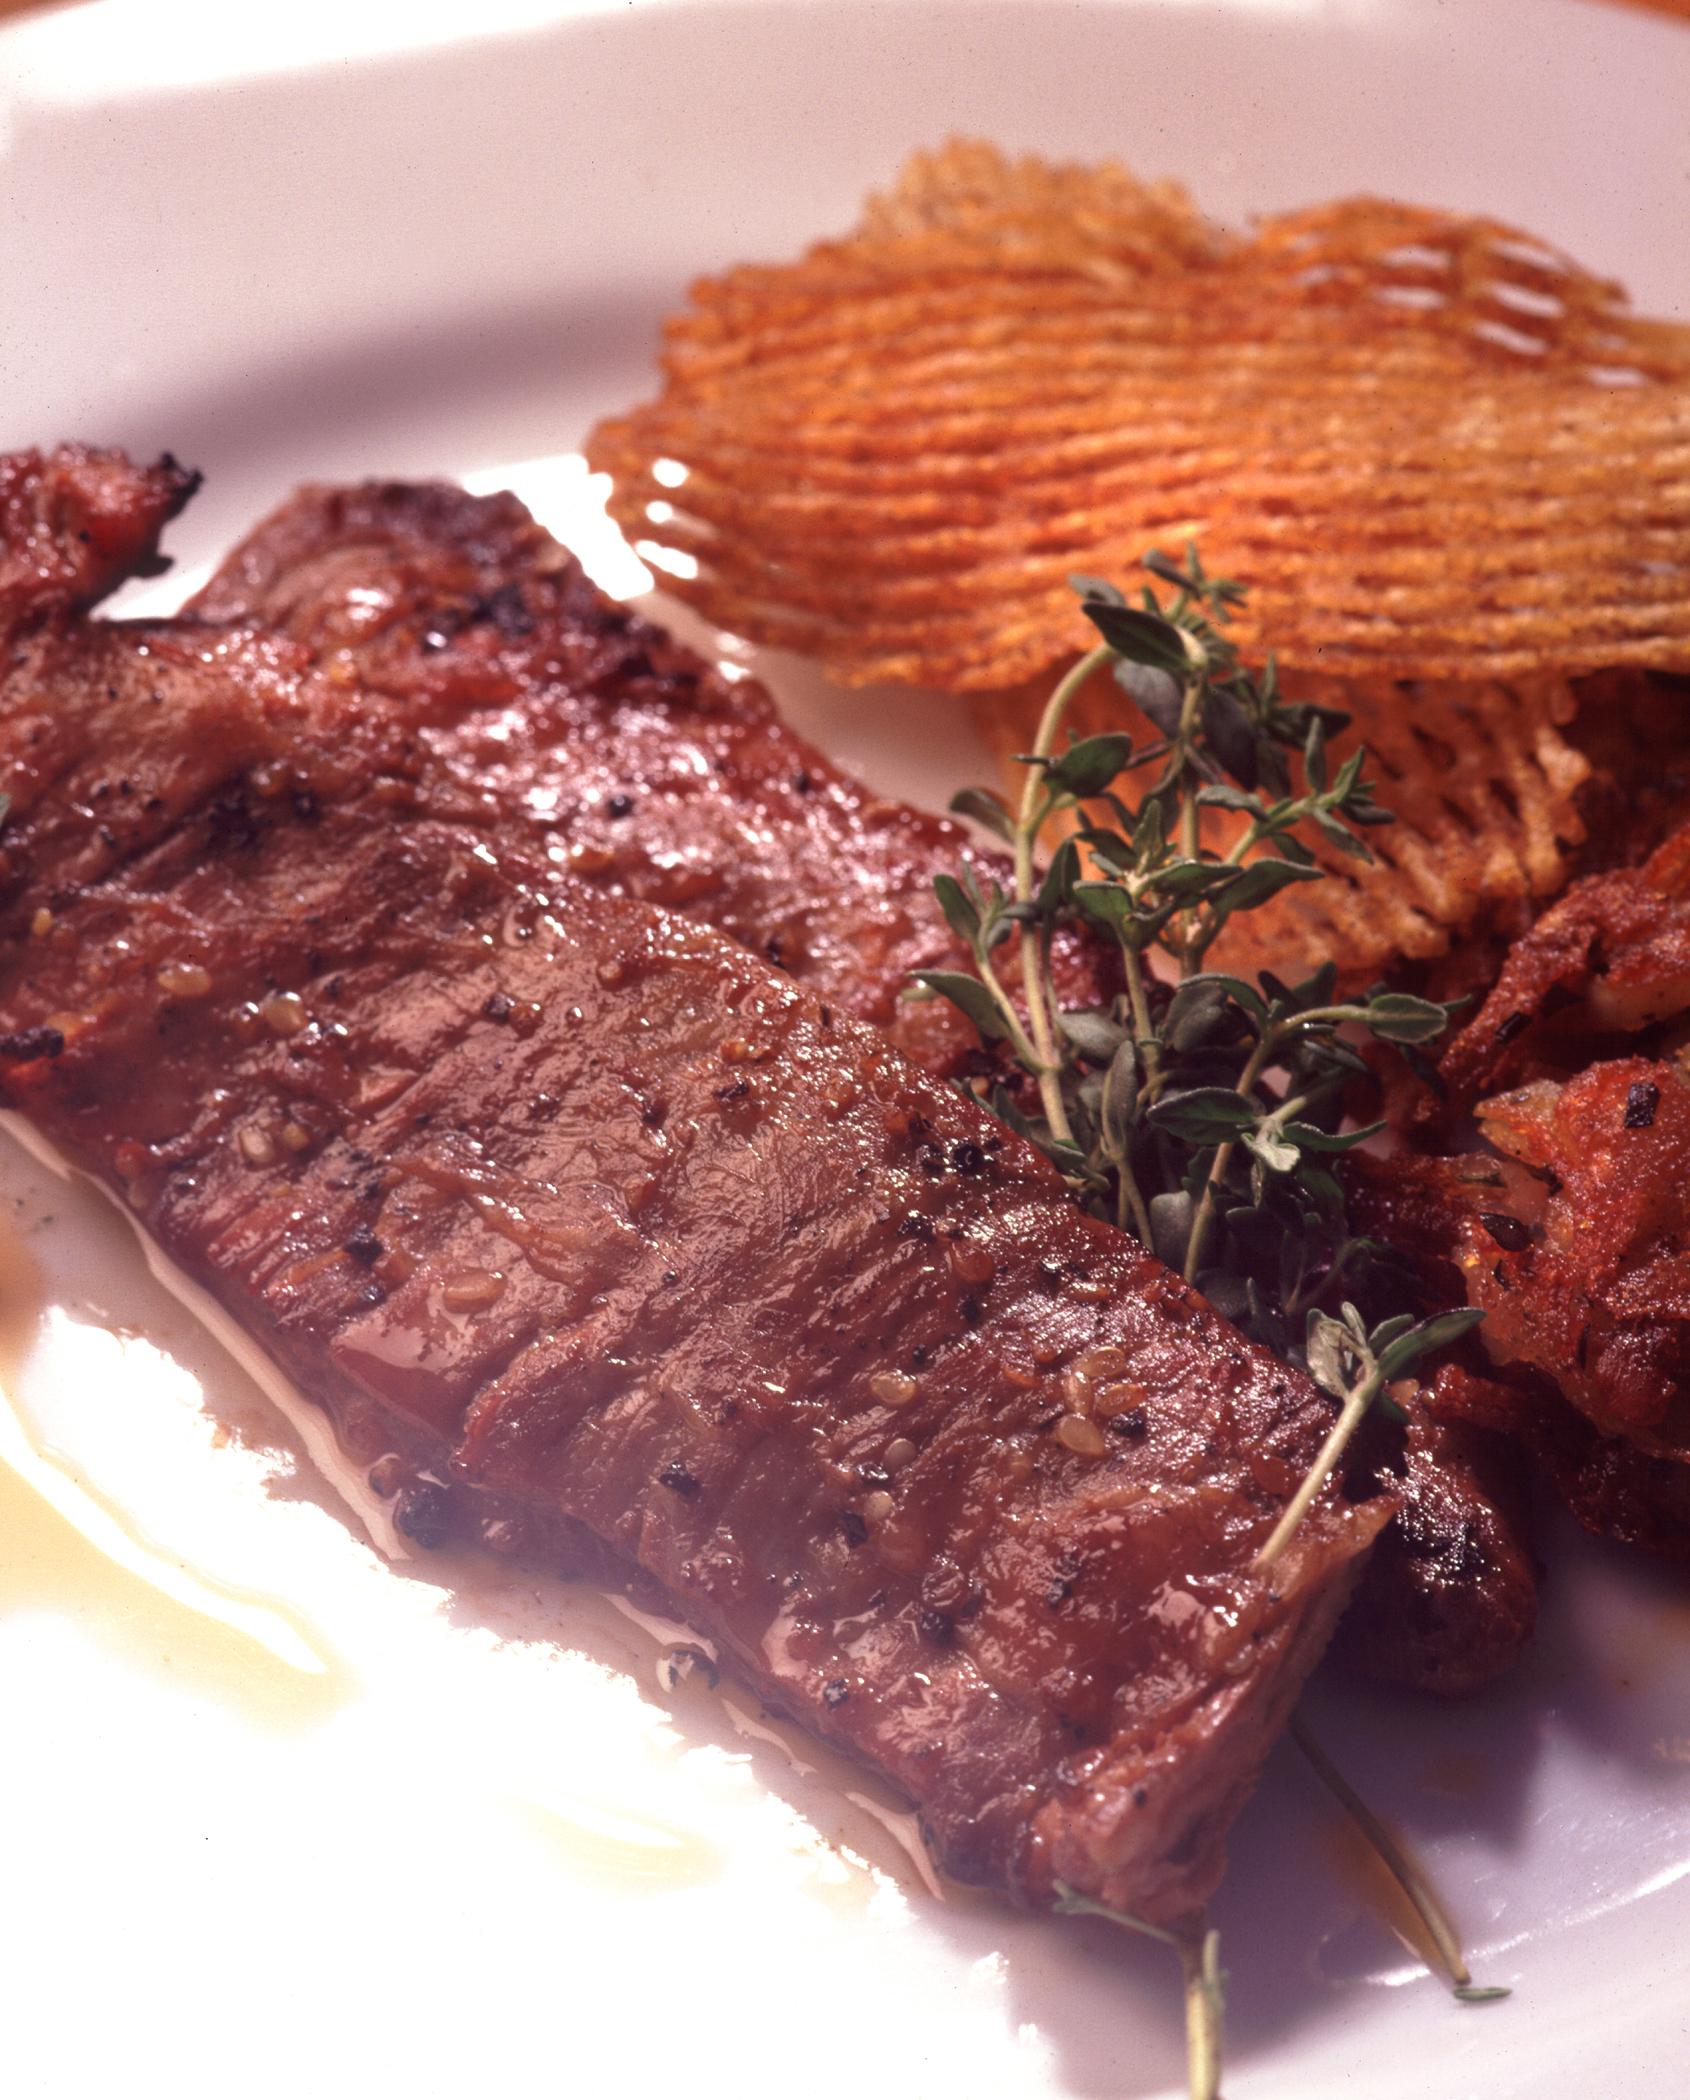 veal_skirt_steaks_with_asian_spices_and_lobster_hash_cakes.jpg